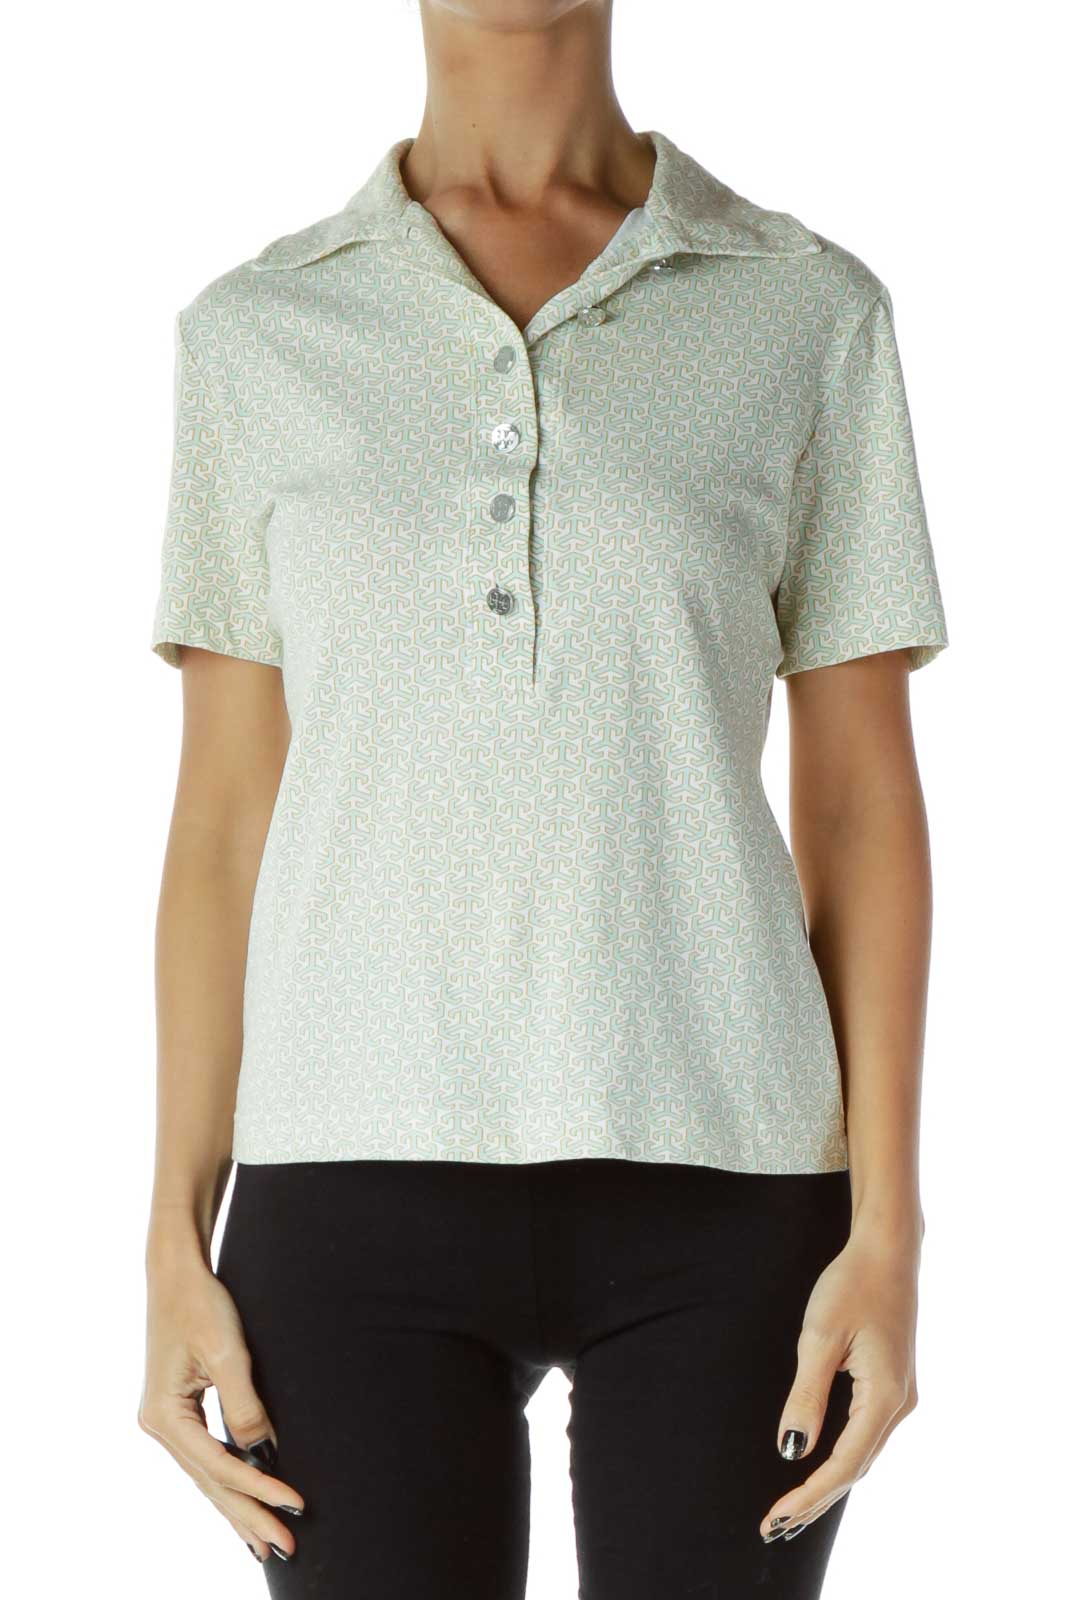 Green White Collared Shirt  Front